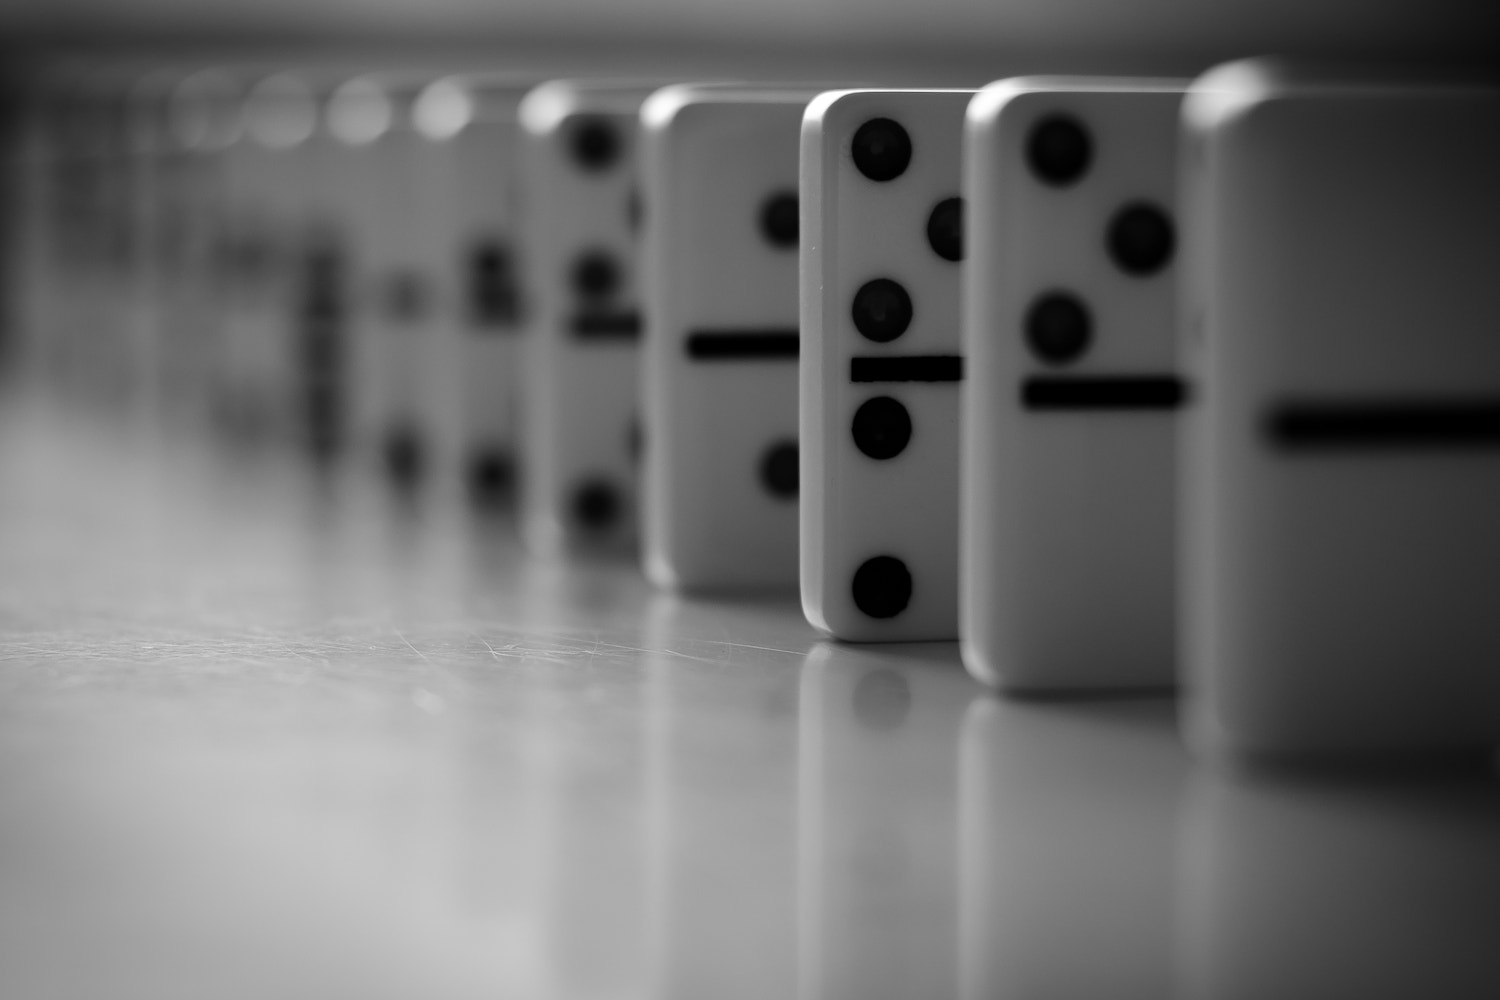 Photograph Domino by Ulf Bjolin on 500px